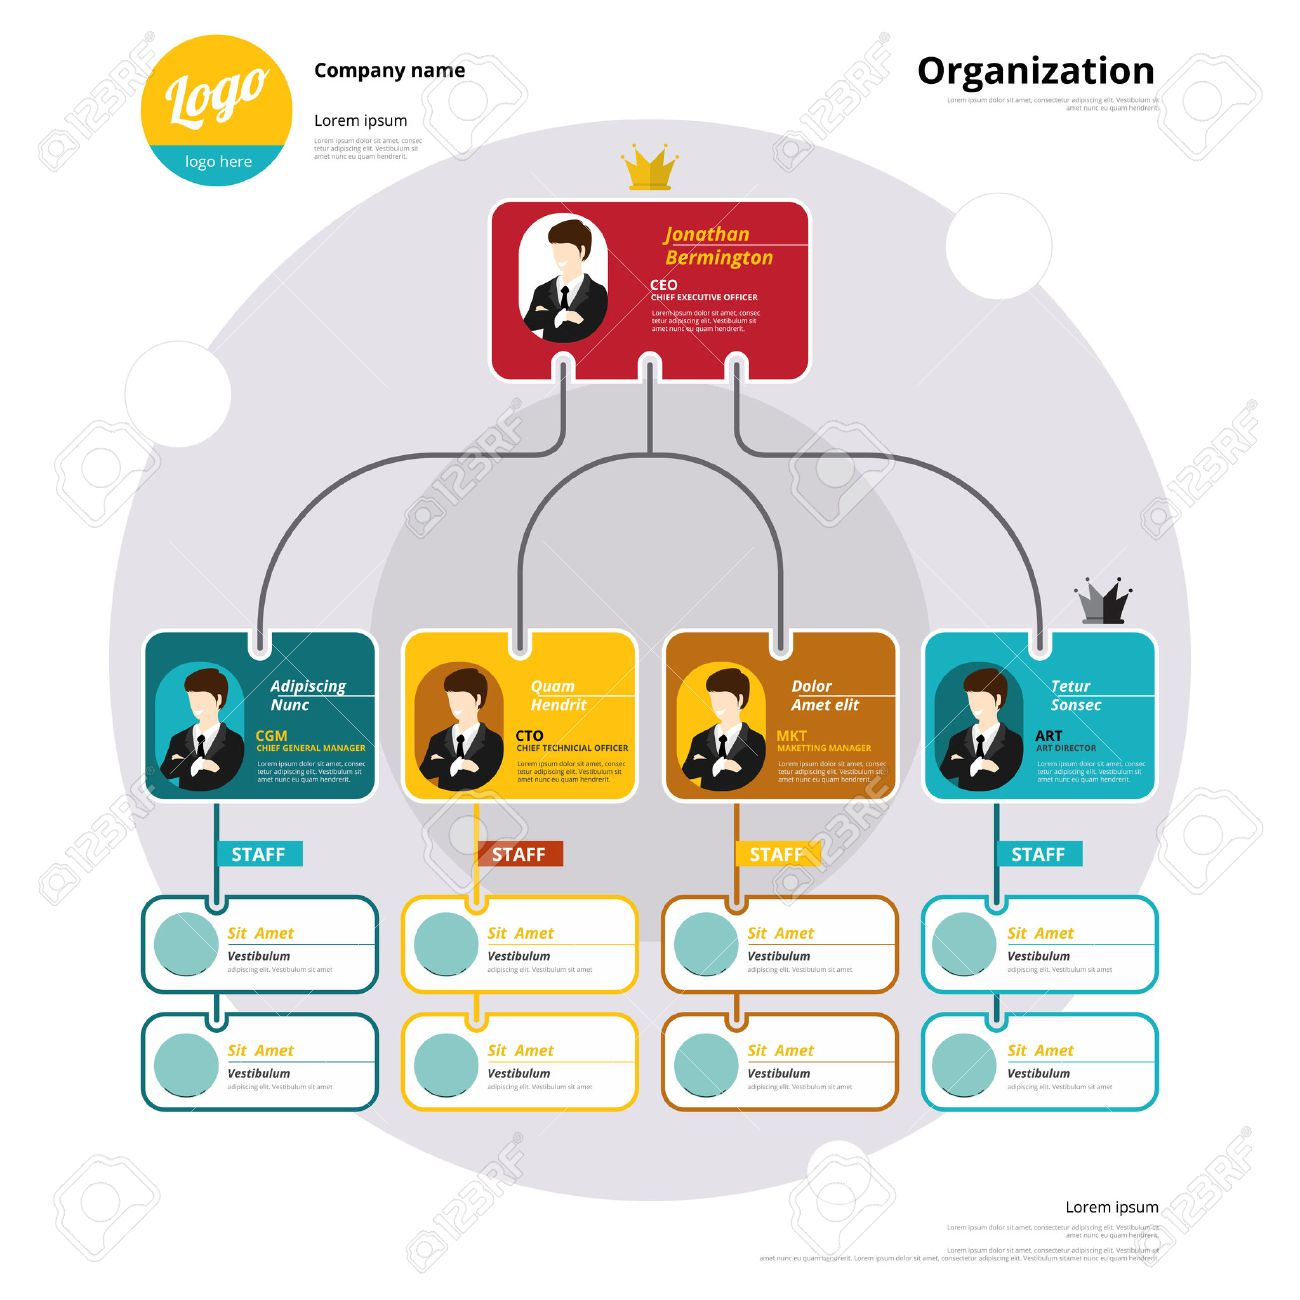 Organization chart, Coporate structure, Flow of organizational. Vector illustration. - 39250407